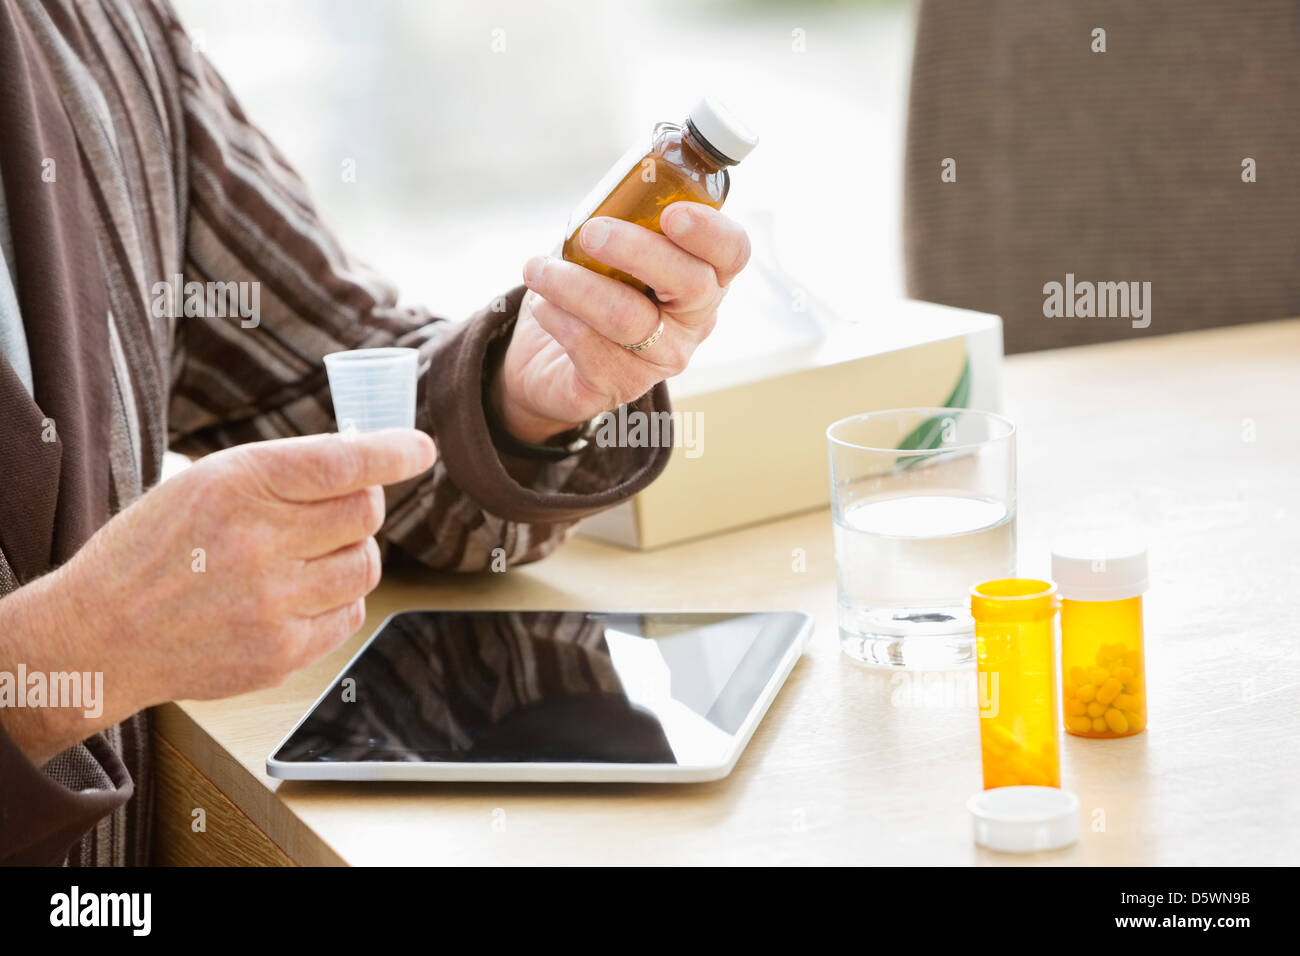 Older man taking medications at table - Stock Image